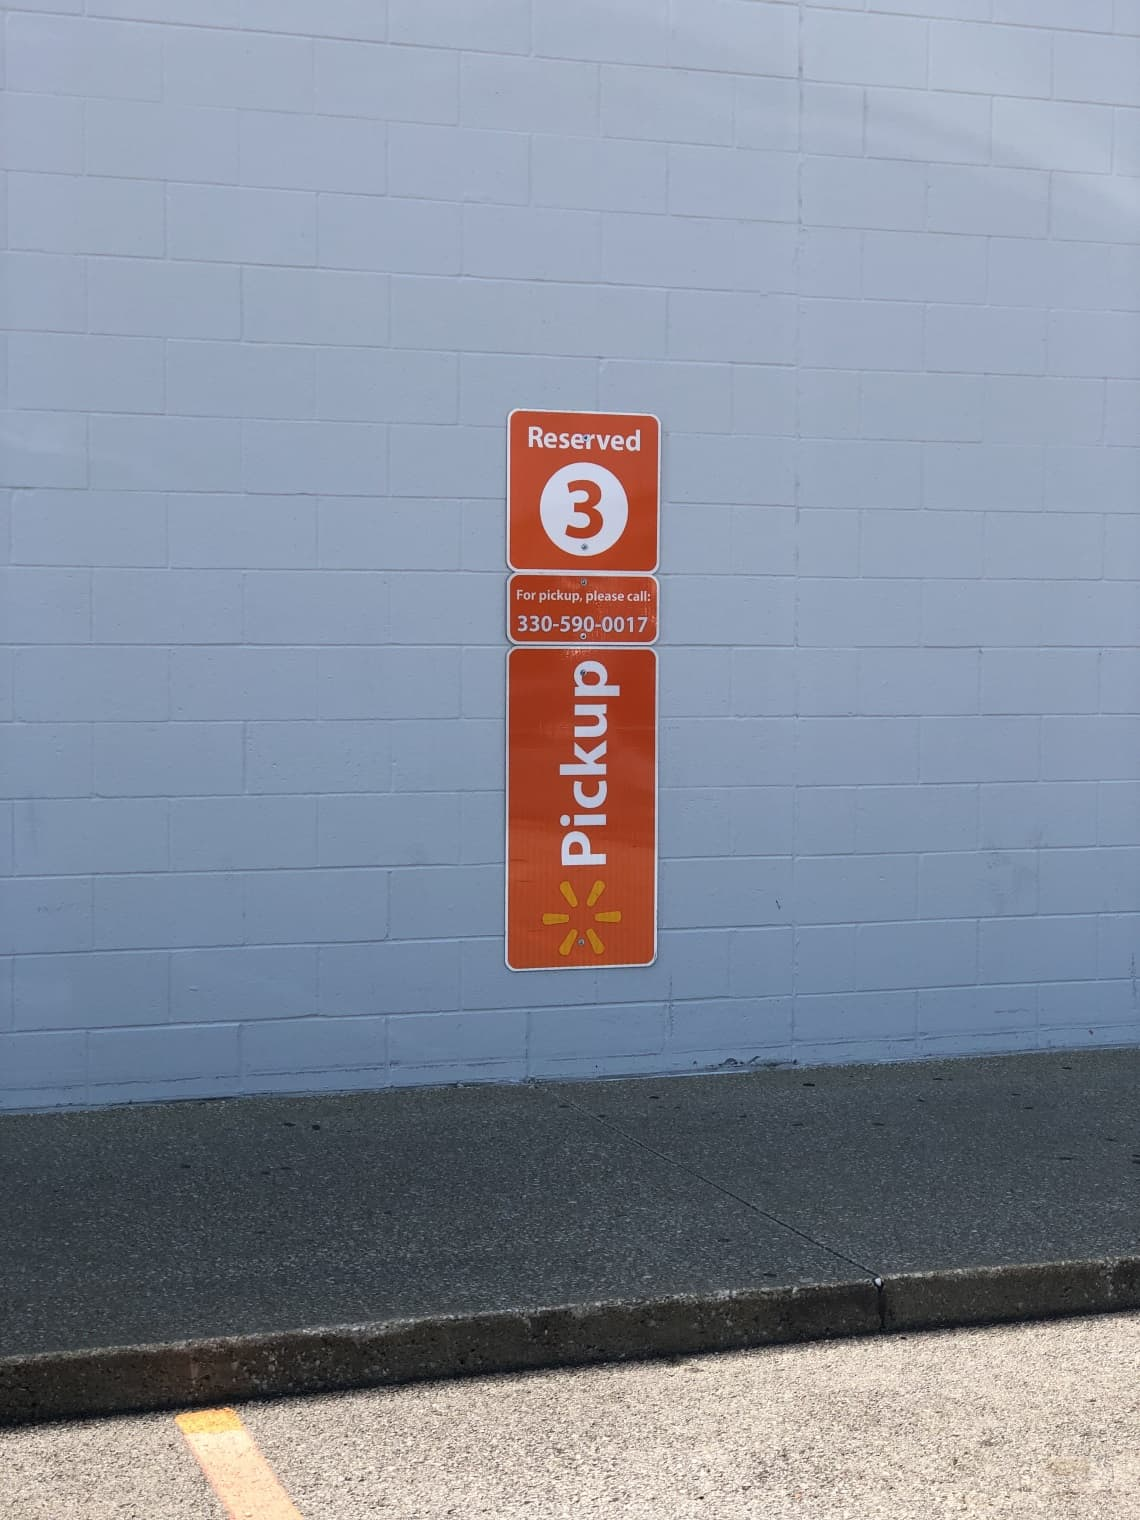 online grocery shopping pick up parking space